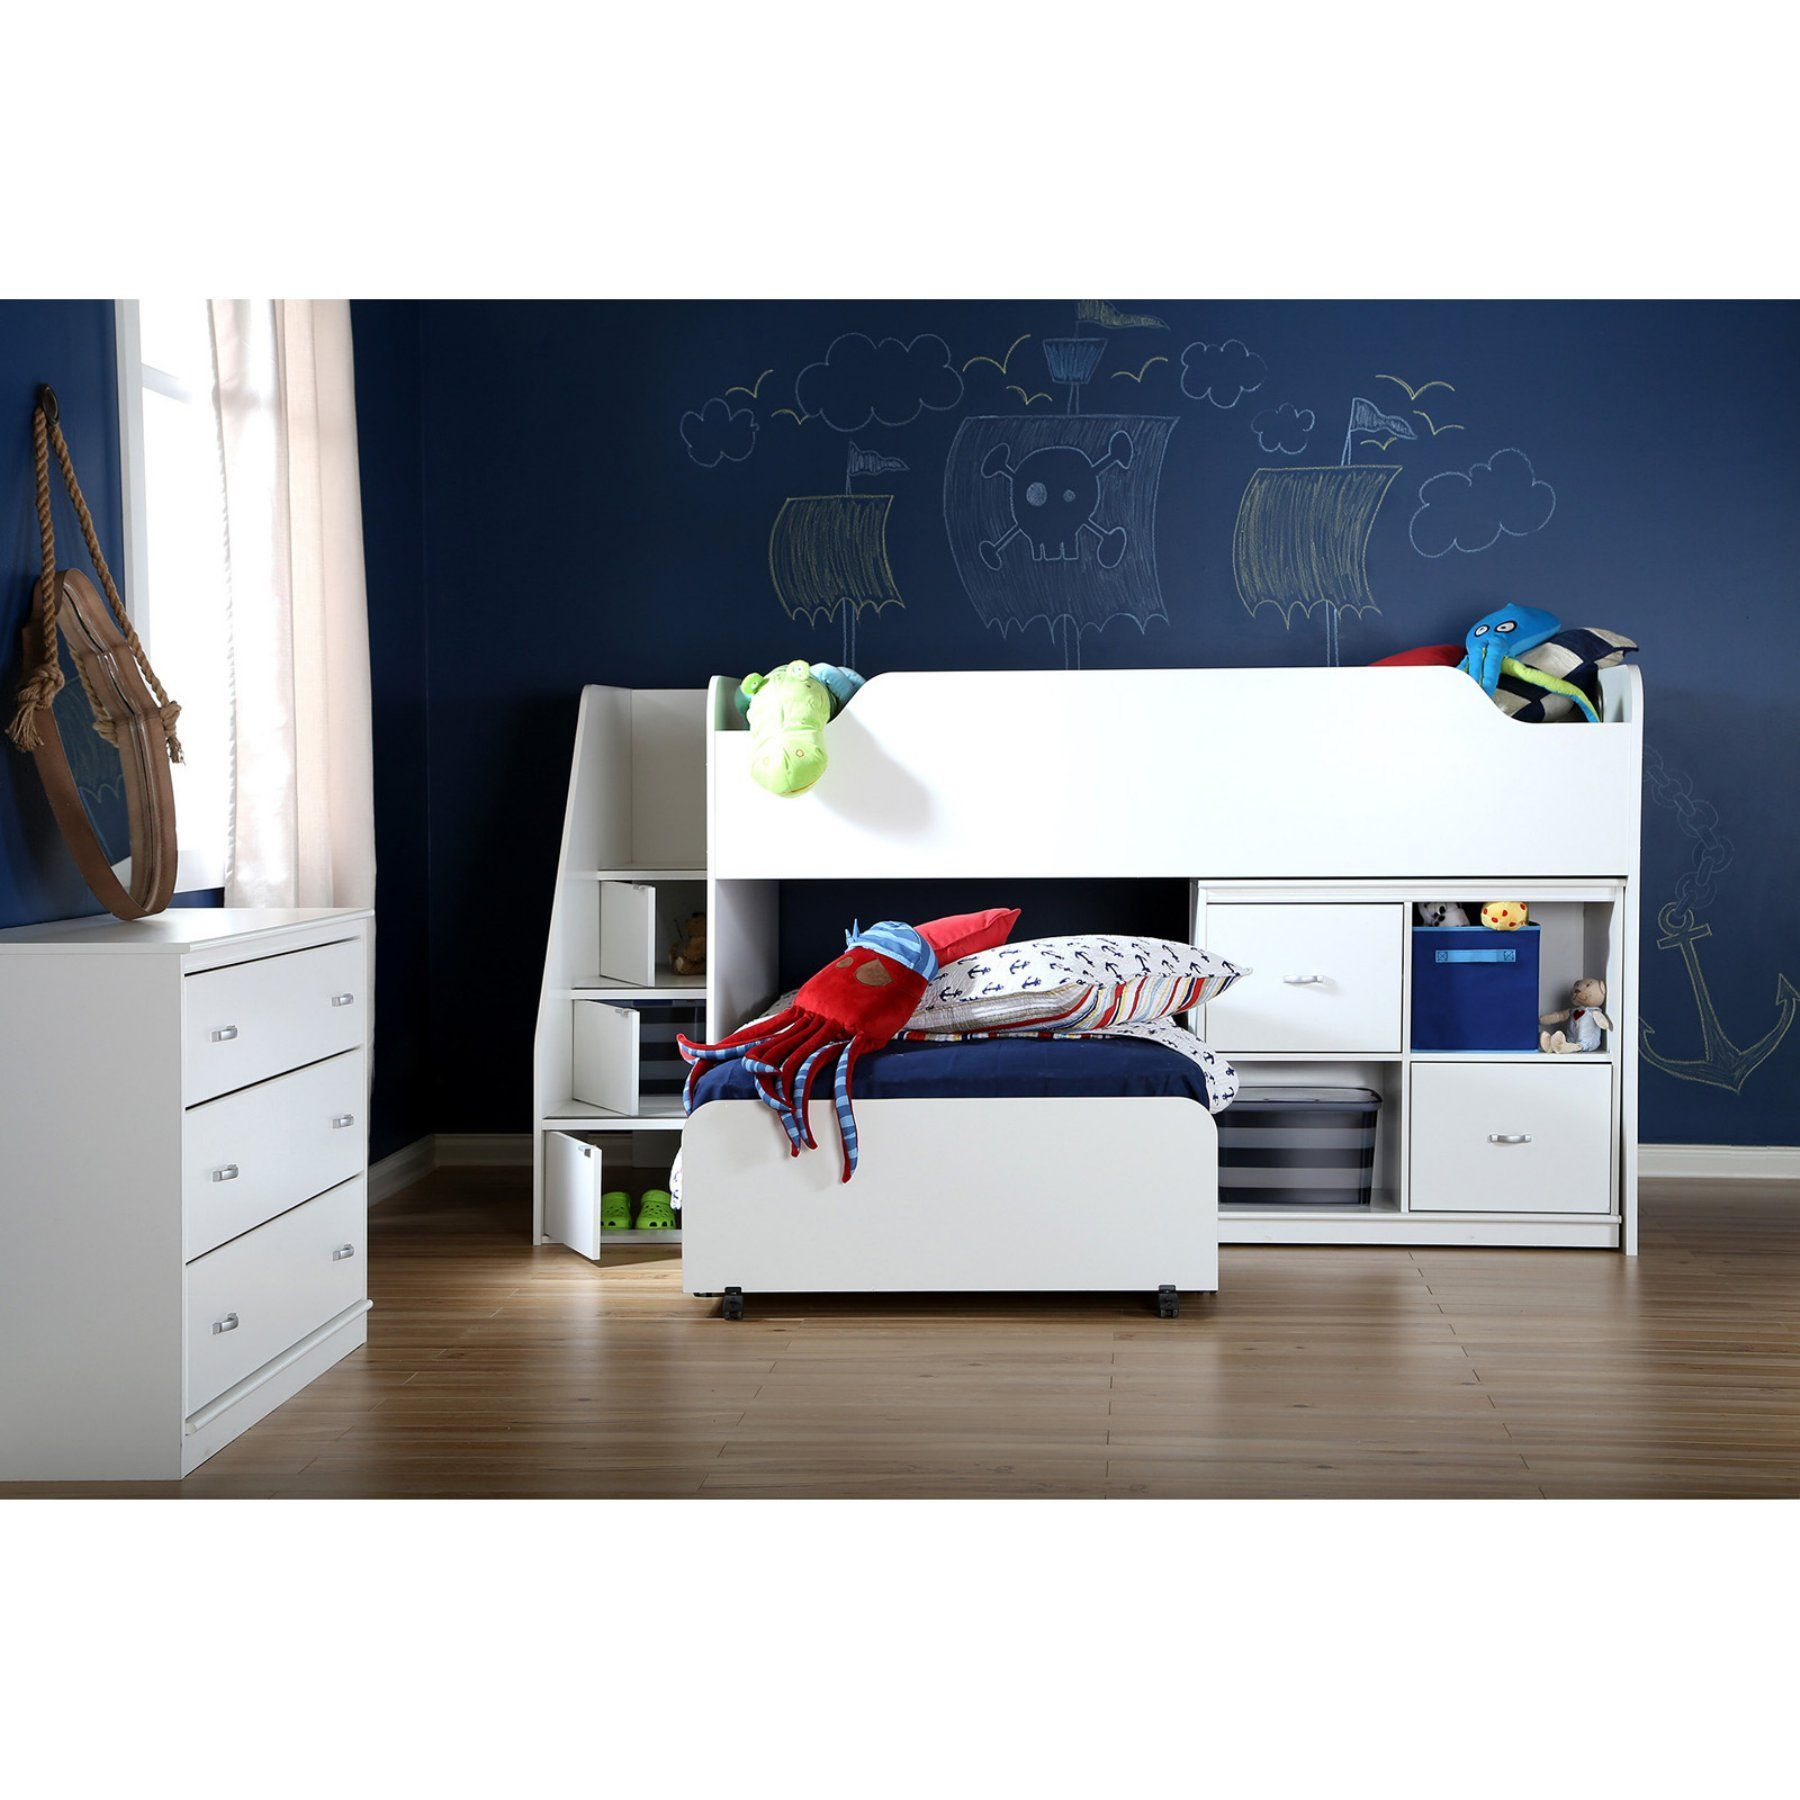 Mobby loft bed with stairs  South Shore Twin Loft Bed with Trundle and Storage Unit  A